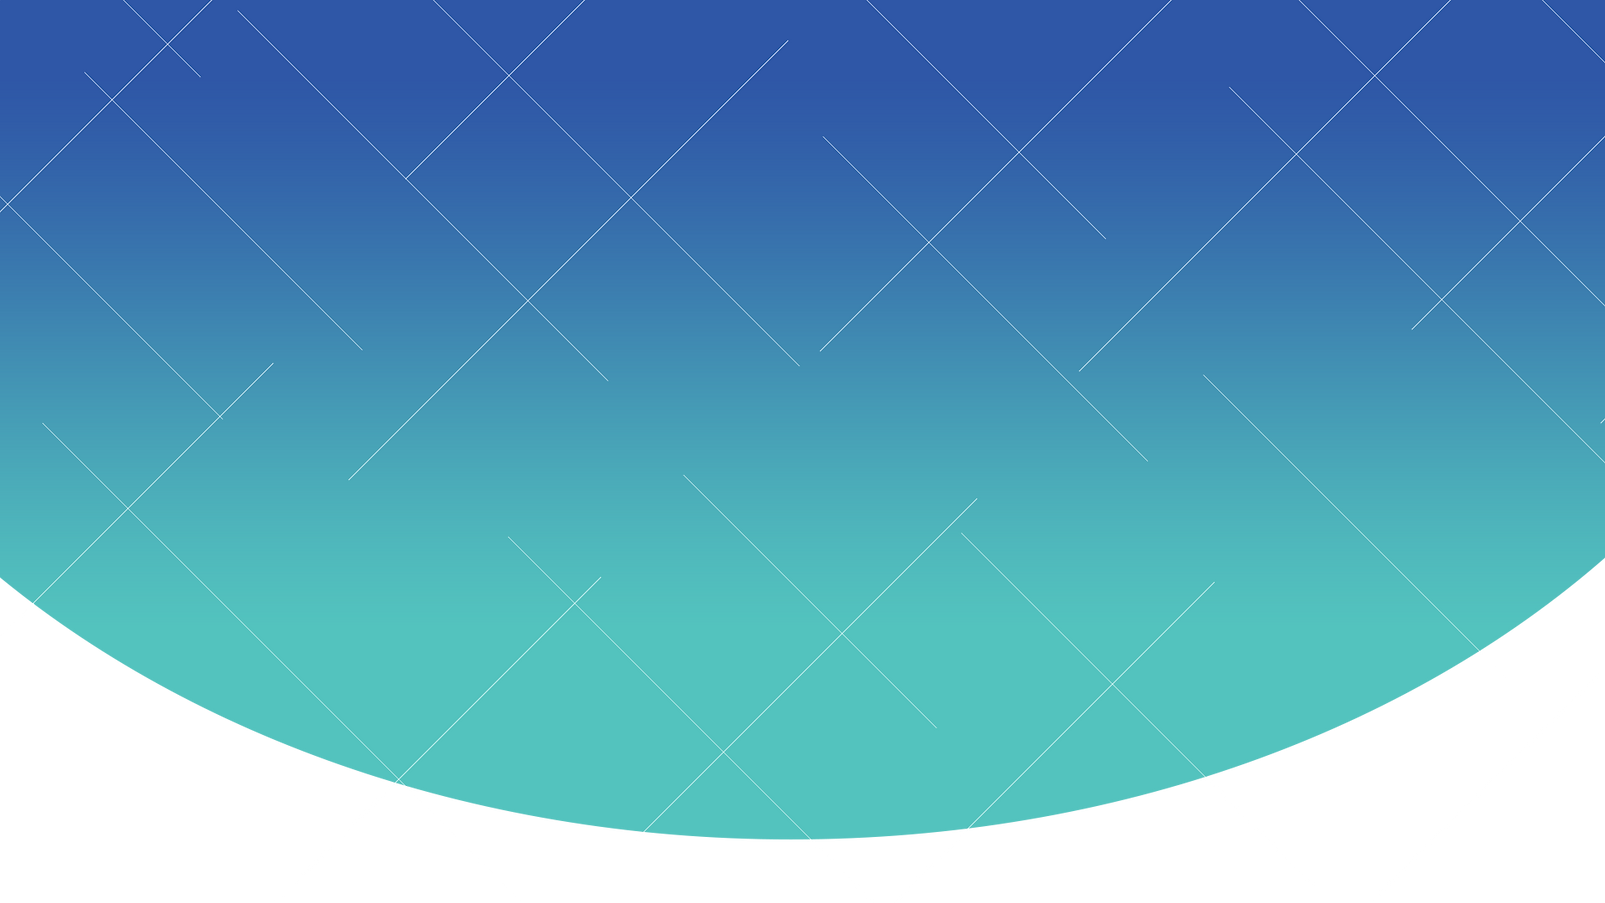 Gradient ball.png